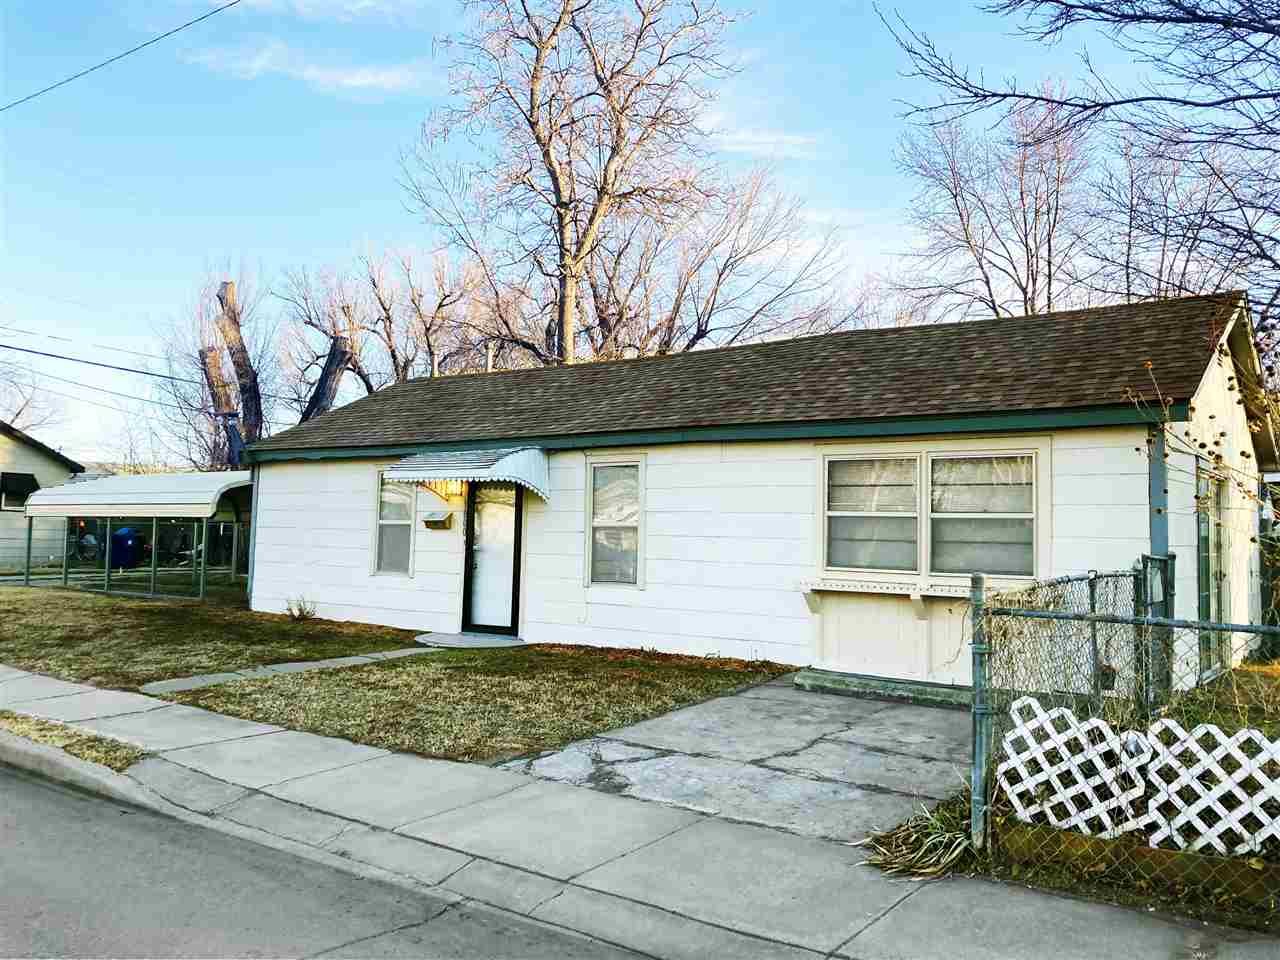 Light, fresh and welcoming Two Bedroom ranch. Freshly painted and well cared for. Features spacious